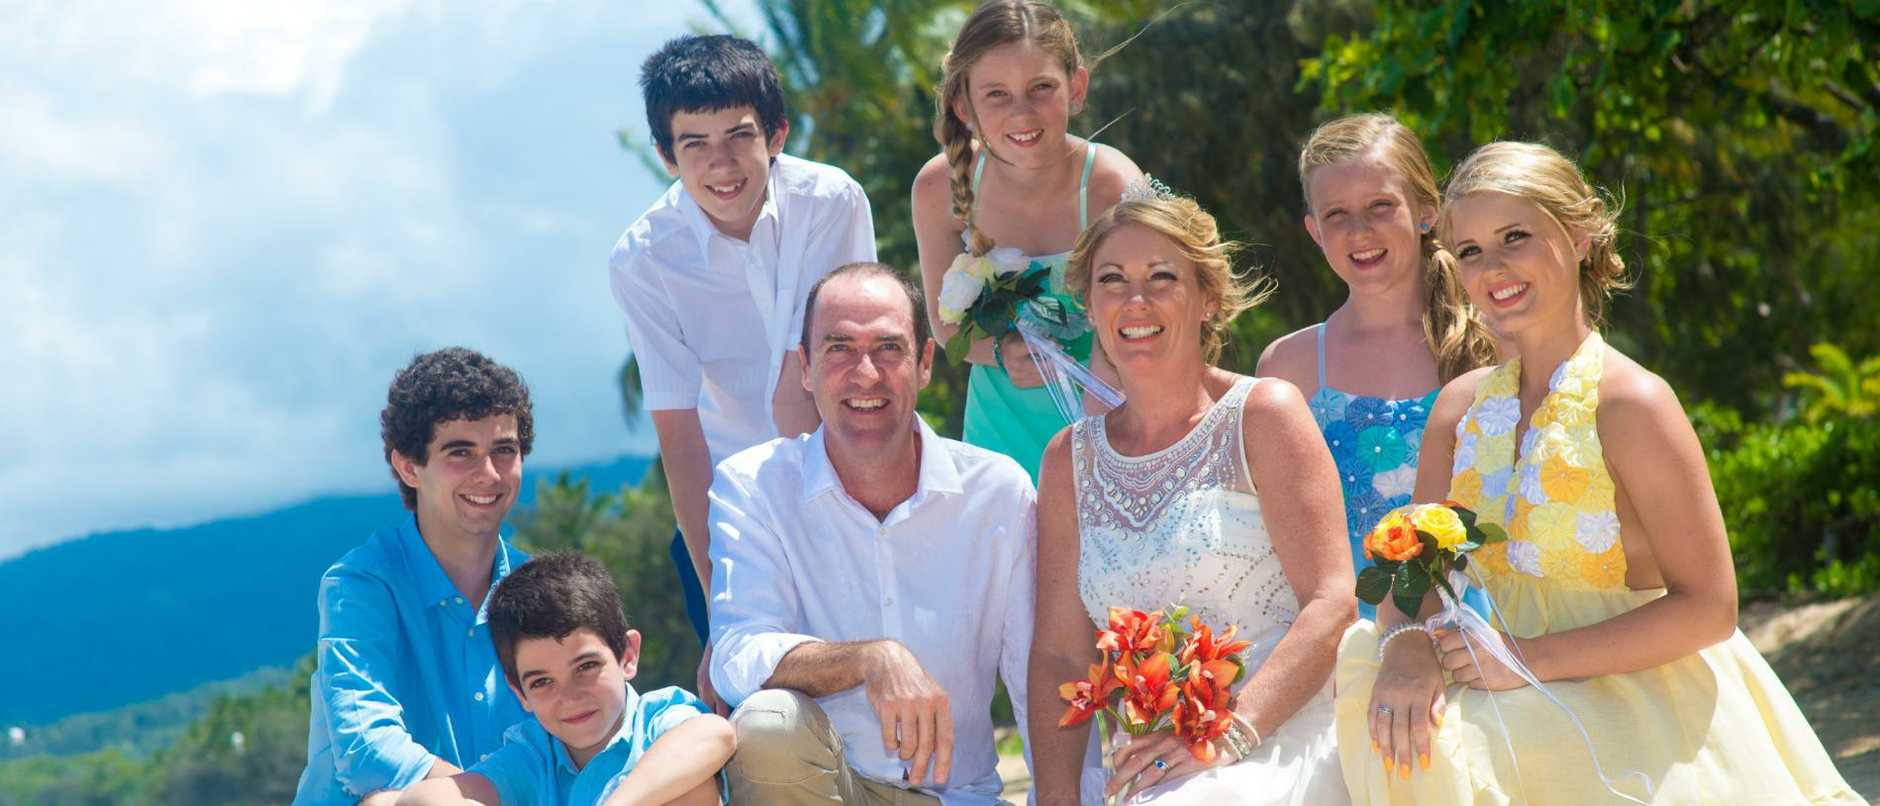 Dave and Lea Taverner with their six children Courtney, Nikolas, Lochlan, Kieran, Jasmine and Amber are affectionately known as the Brady Bunch.